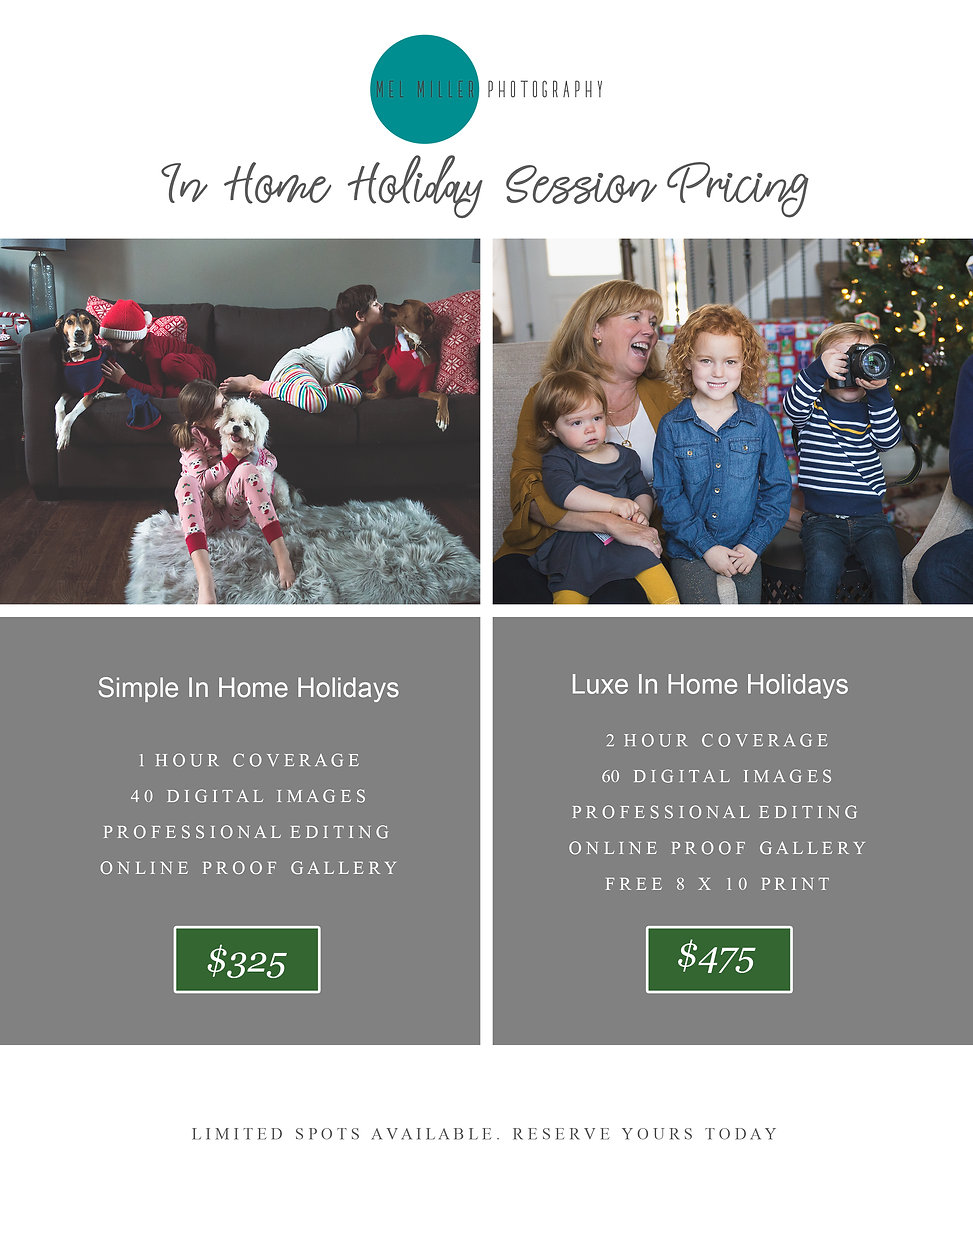 In Home Holiday Pricing.jpg